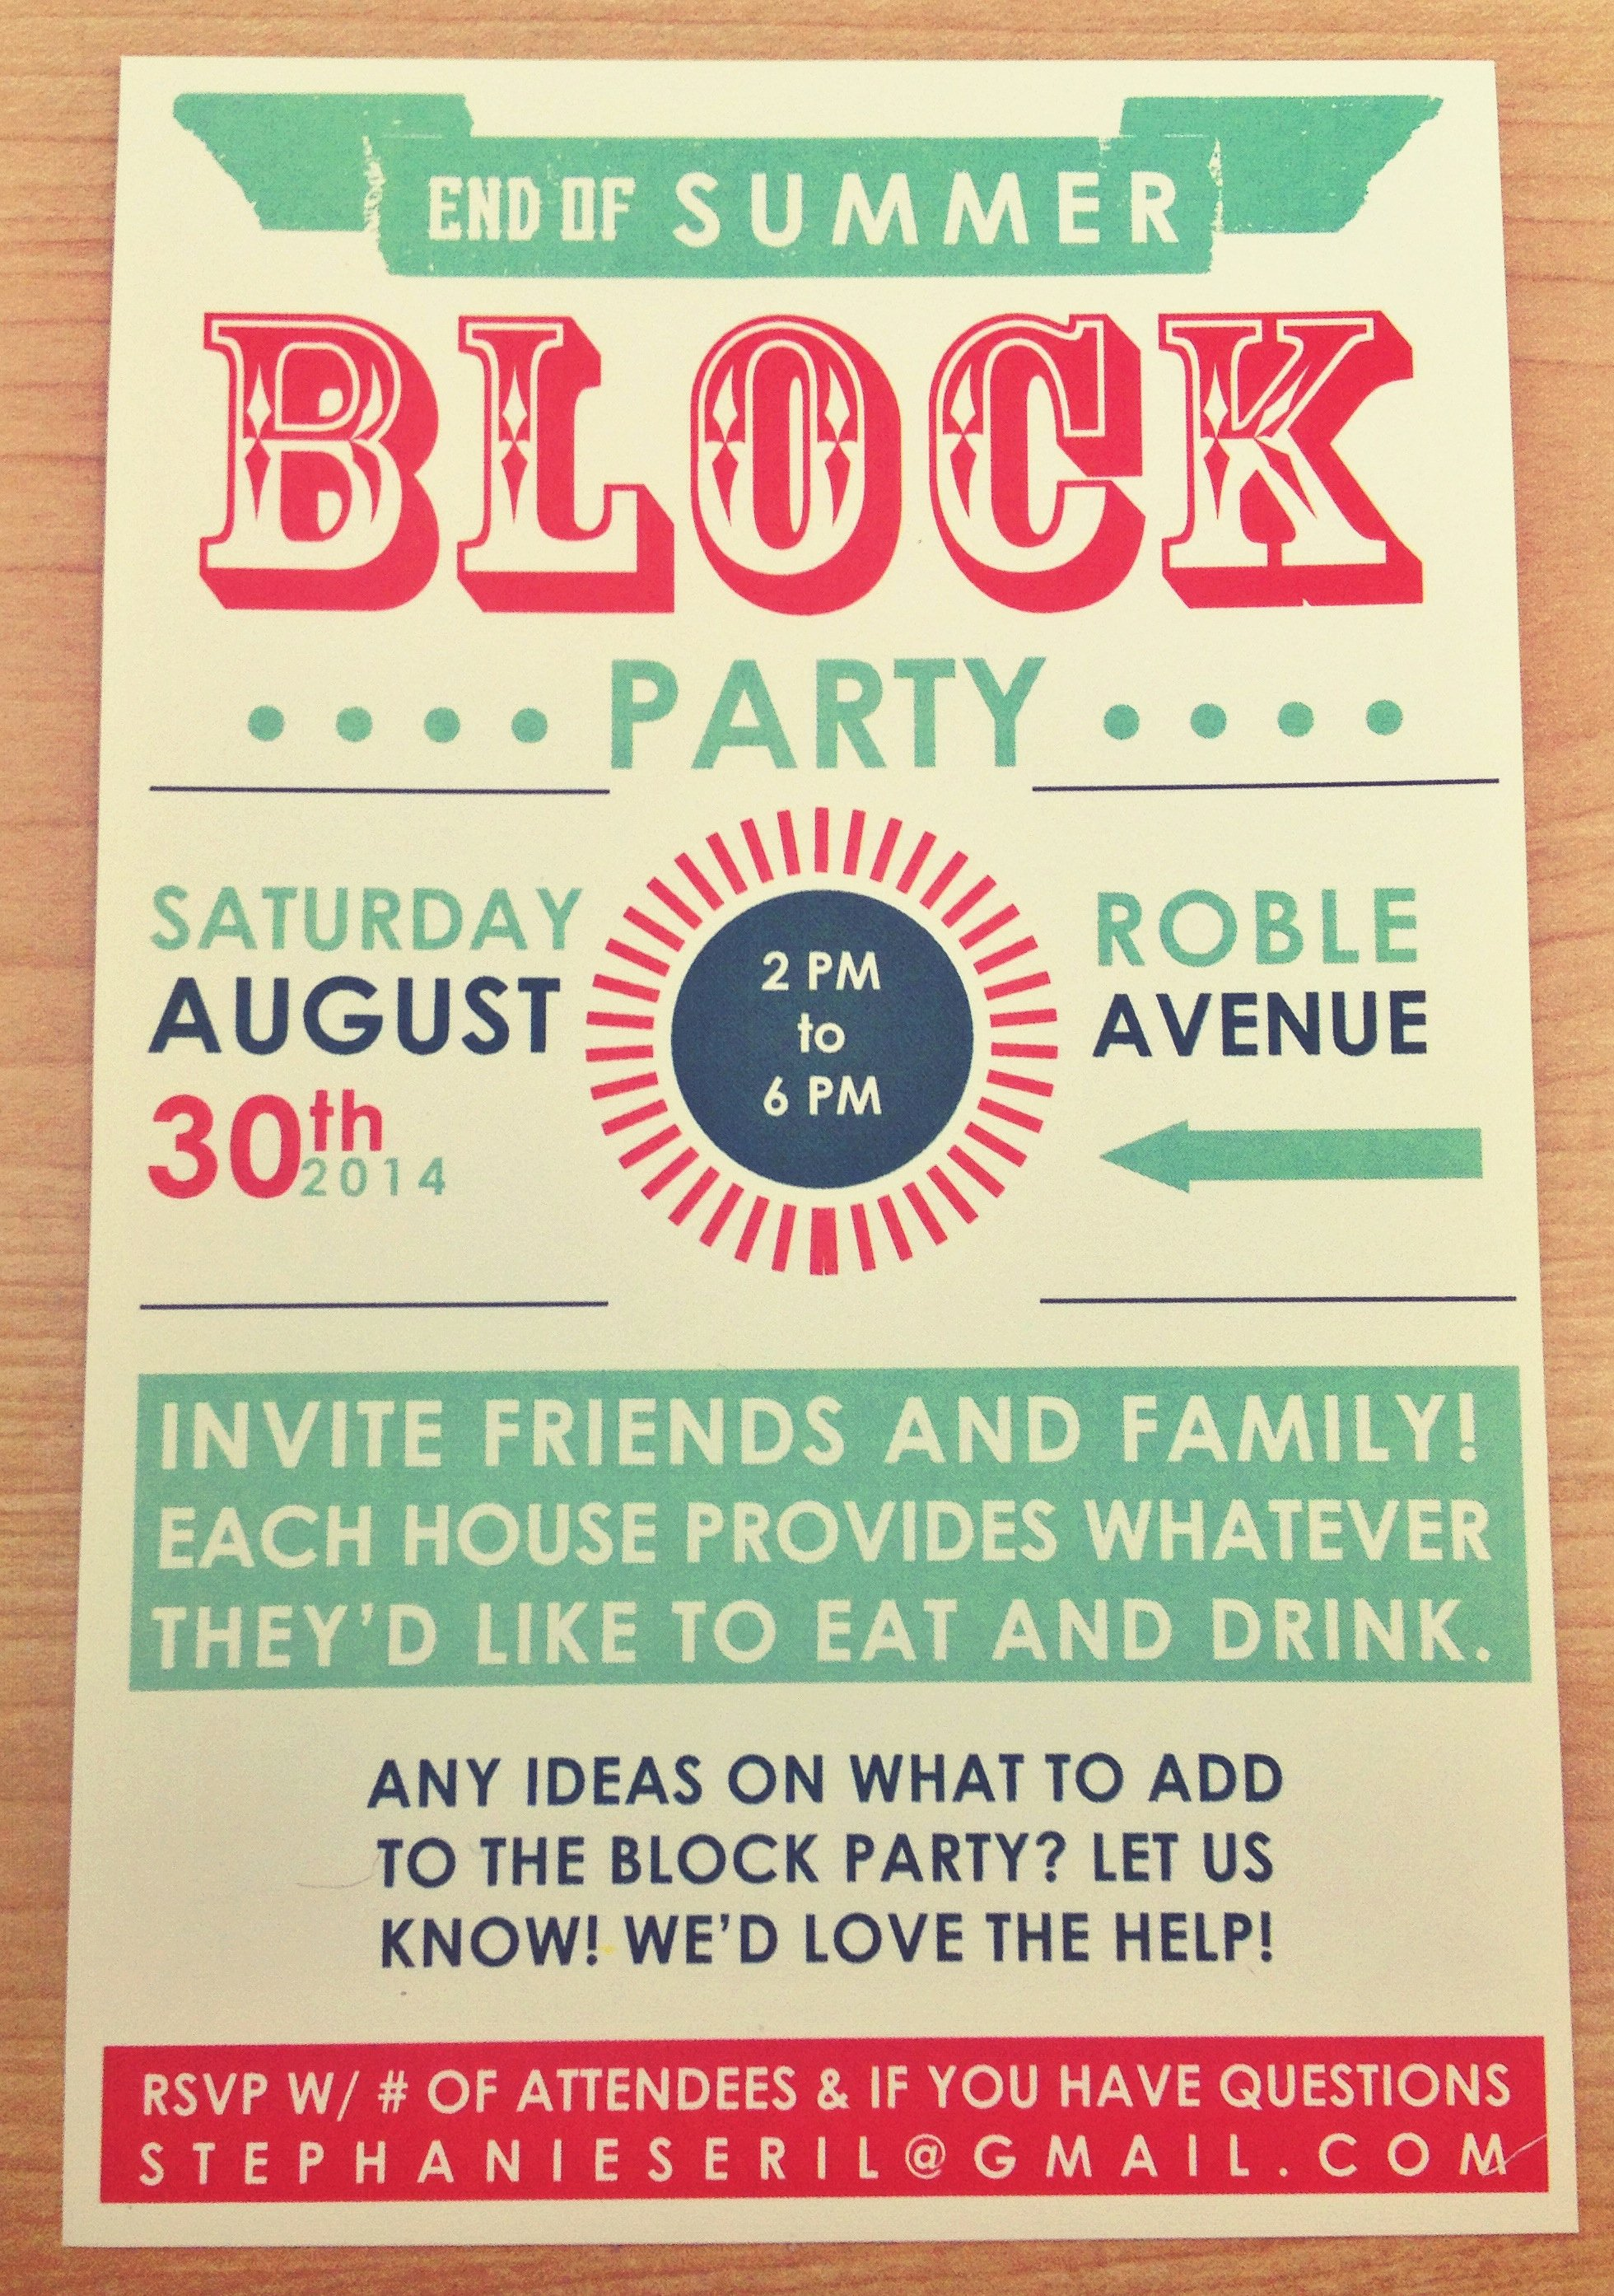 Block Party Invite Template Beautiful End Of Summer Block Party